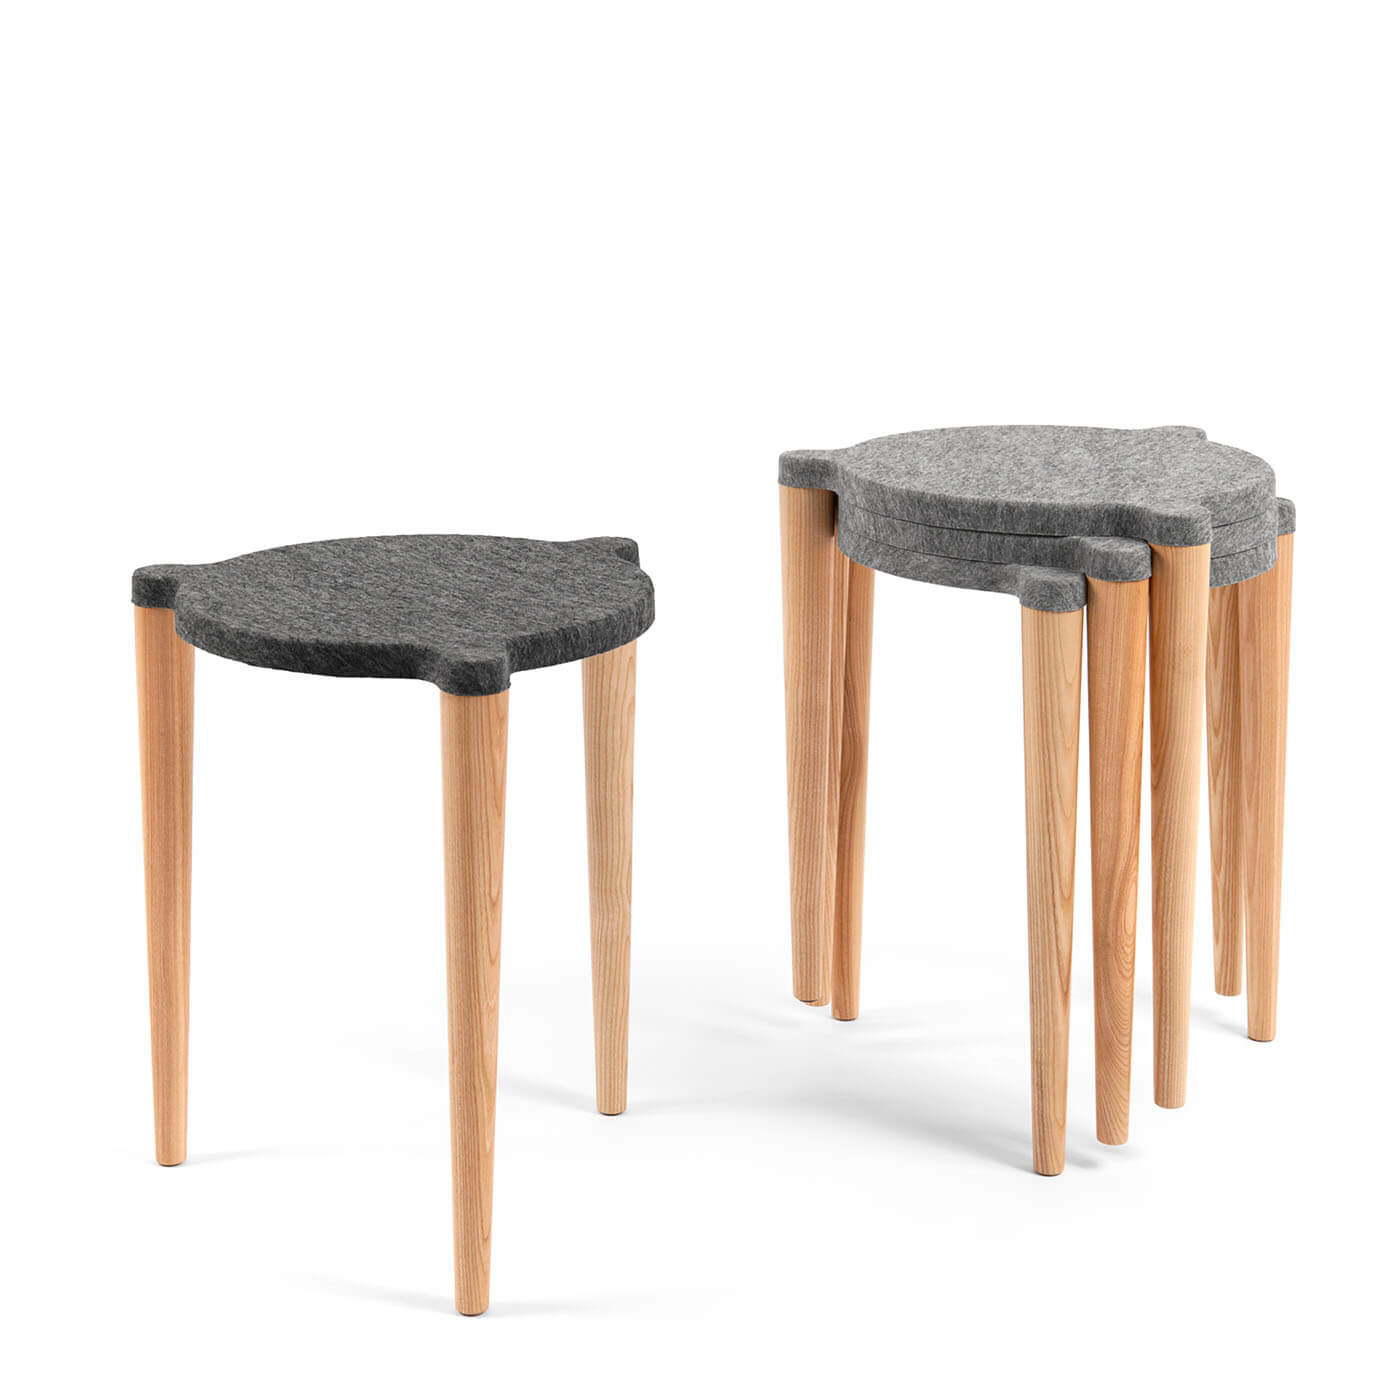 Oot-Oot_Studio_DOT_stool_set_s disainiauhind